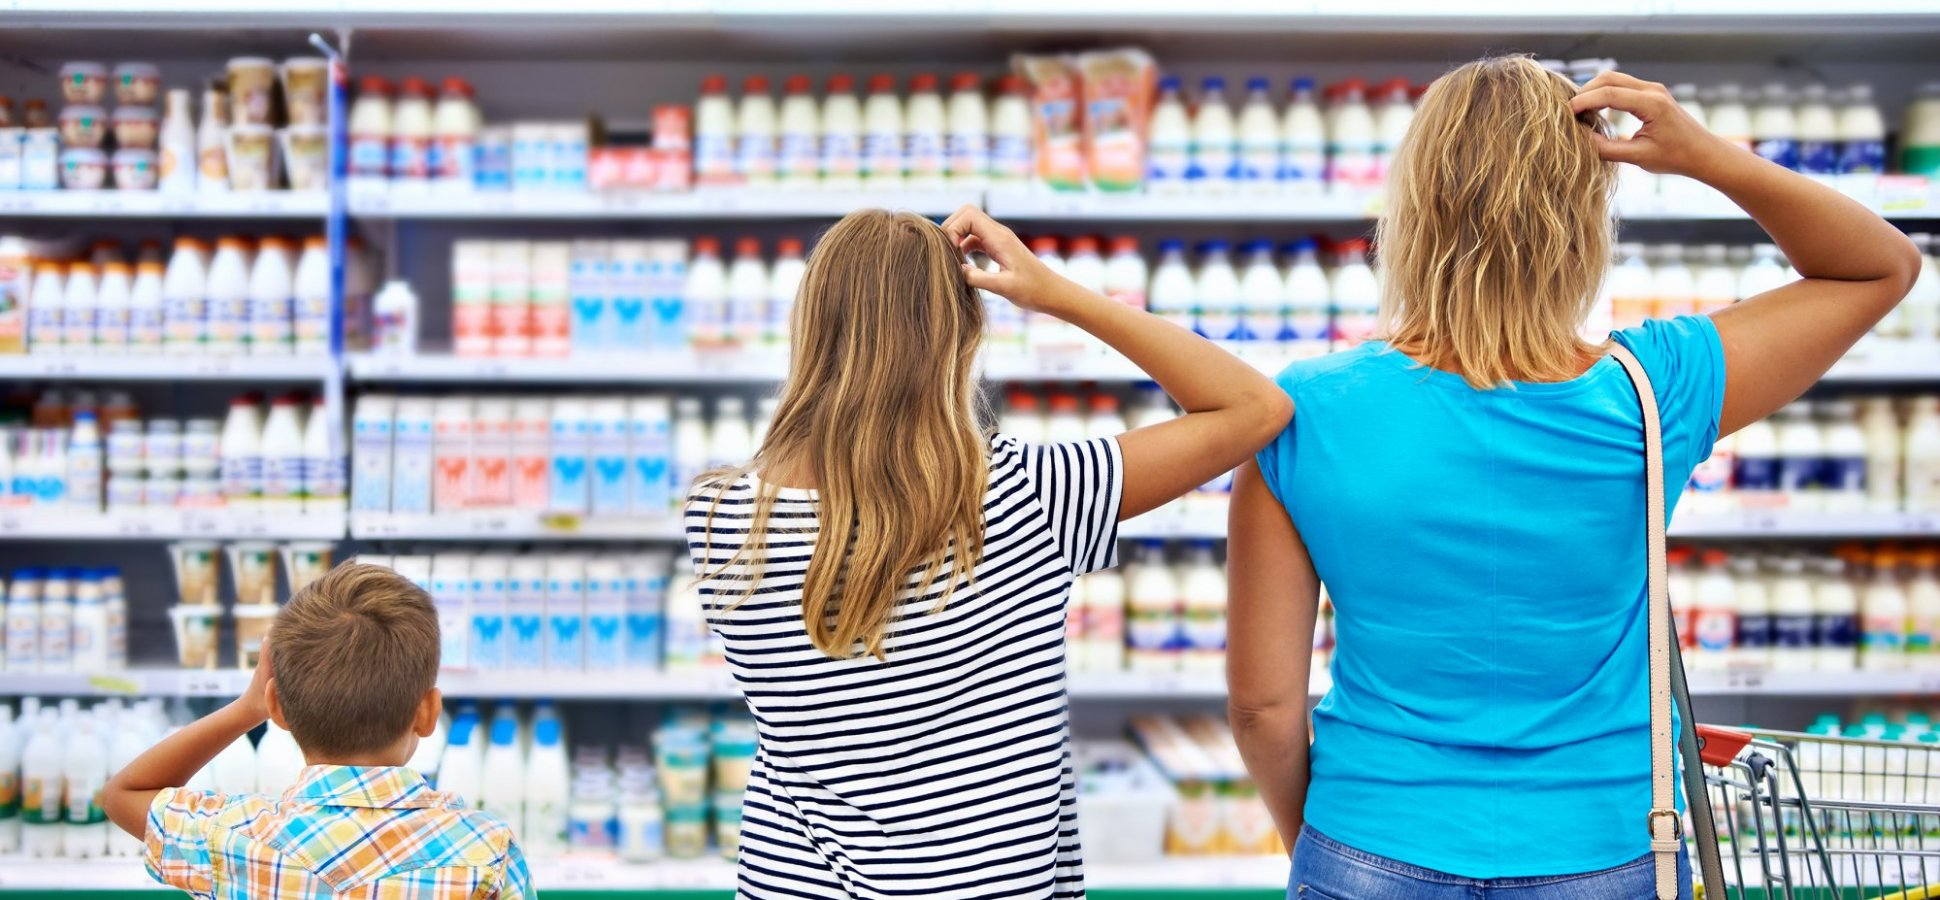 How to Get Your Product on the Shelves at Walmart